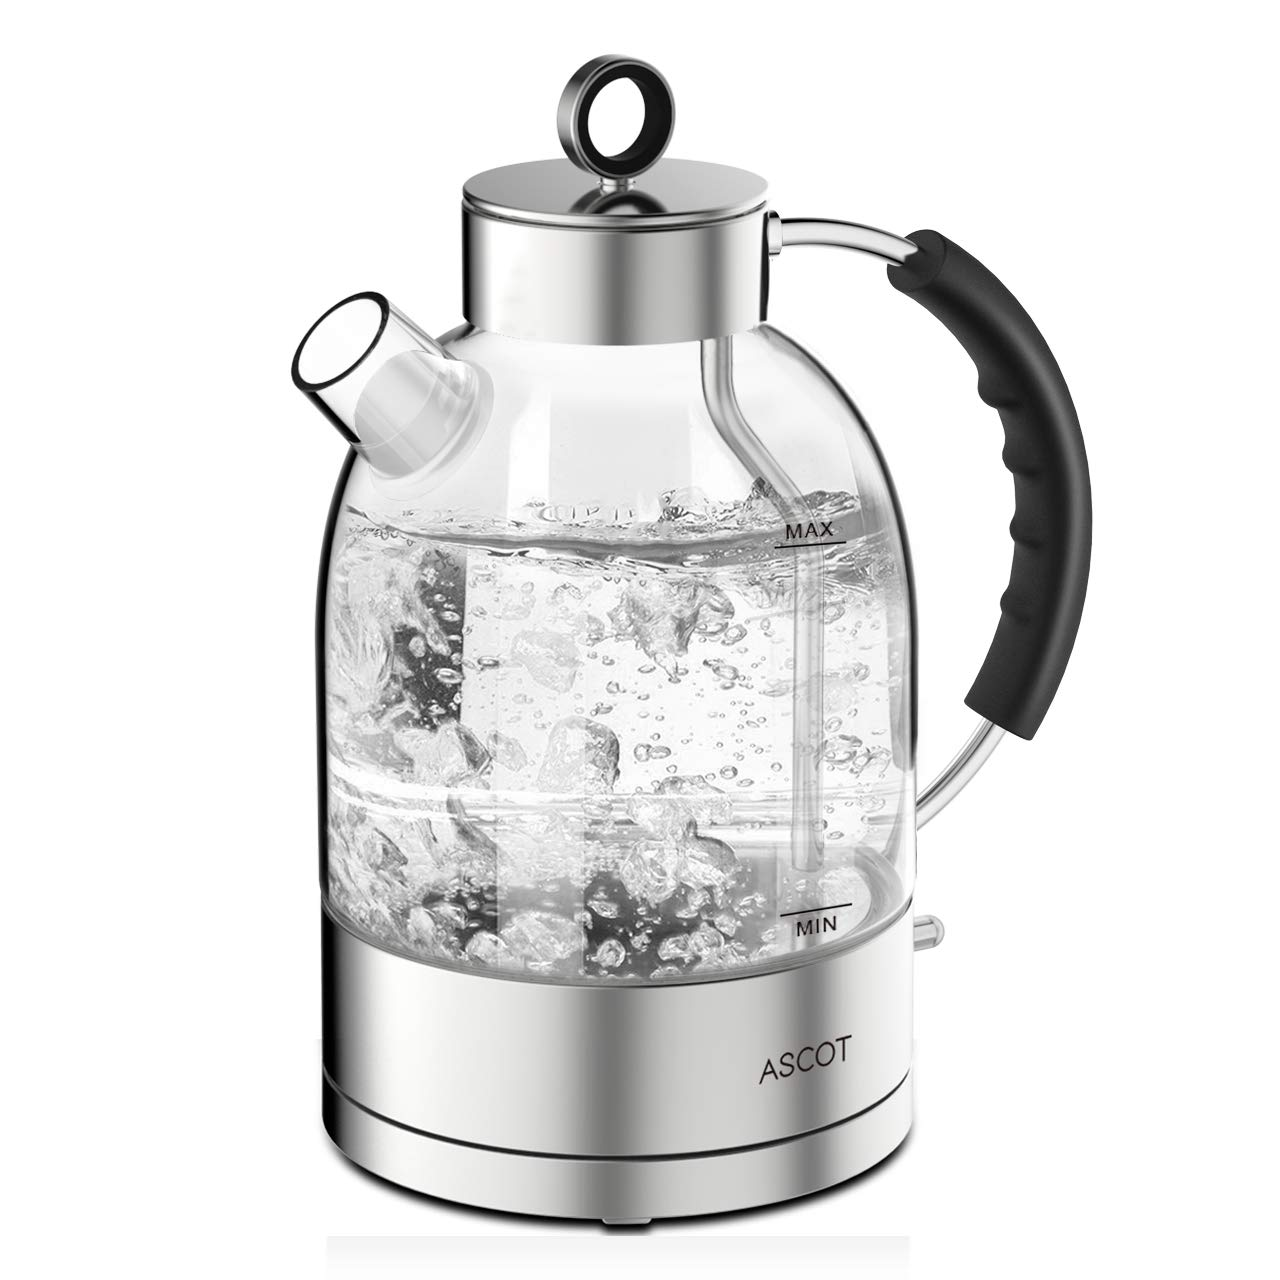 ASCOT KE1003 Electric Kettle, Hot Water Boiler with 304 Stainless Steel, LED Light, Cordless Glass Teapot with Auto Shut Off & Boil-Dry Protection, 1.6 L, Clear